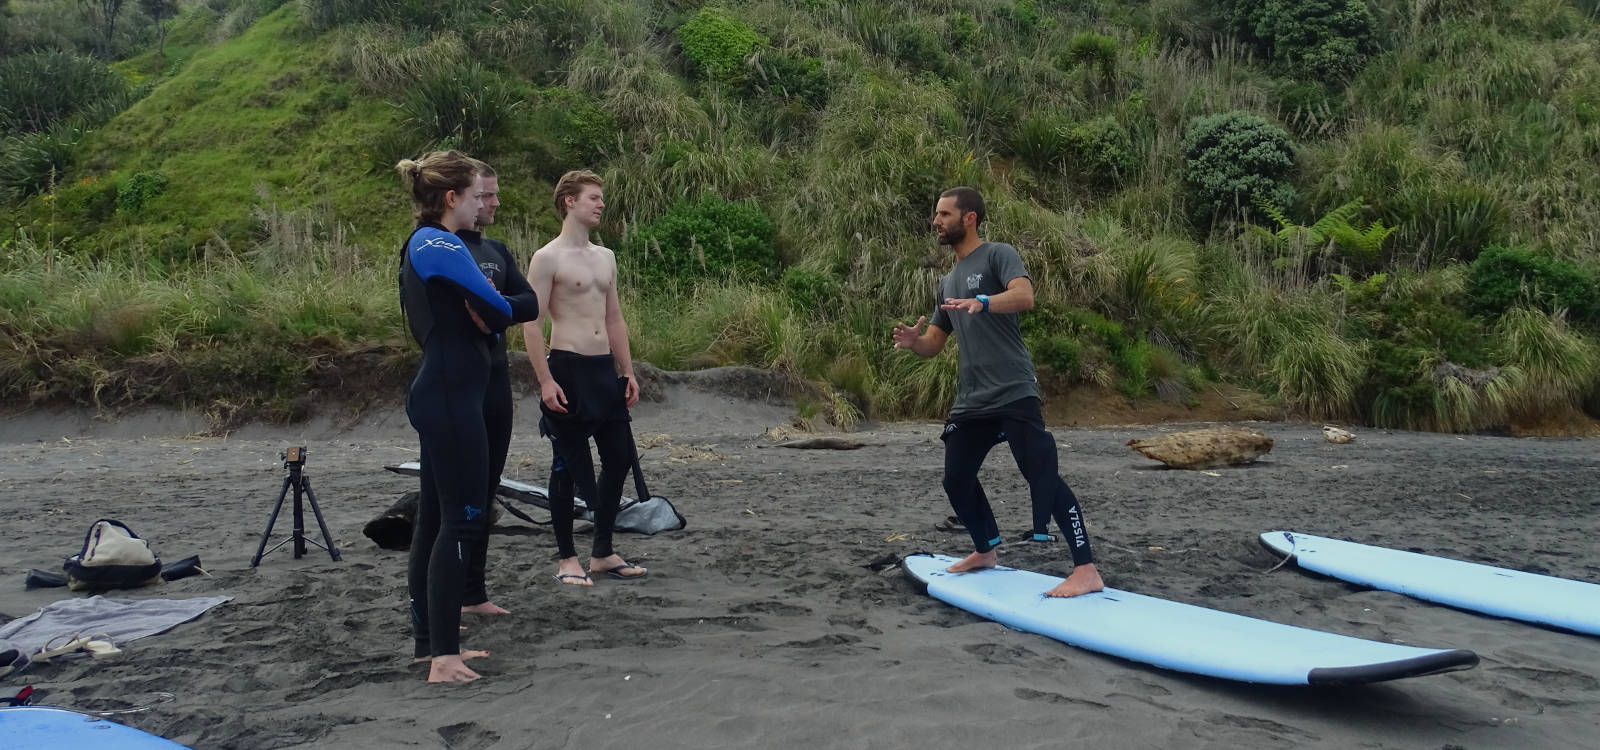 A learn to surf course in Raglan, New Zealand.